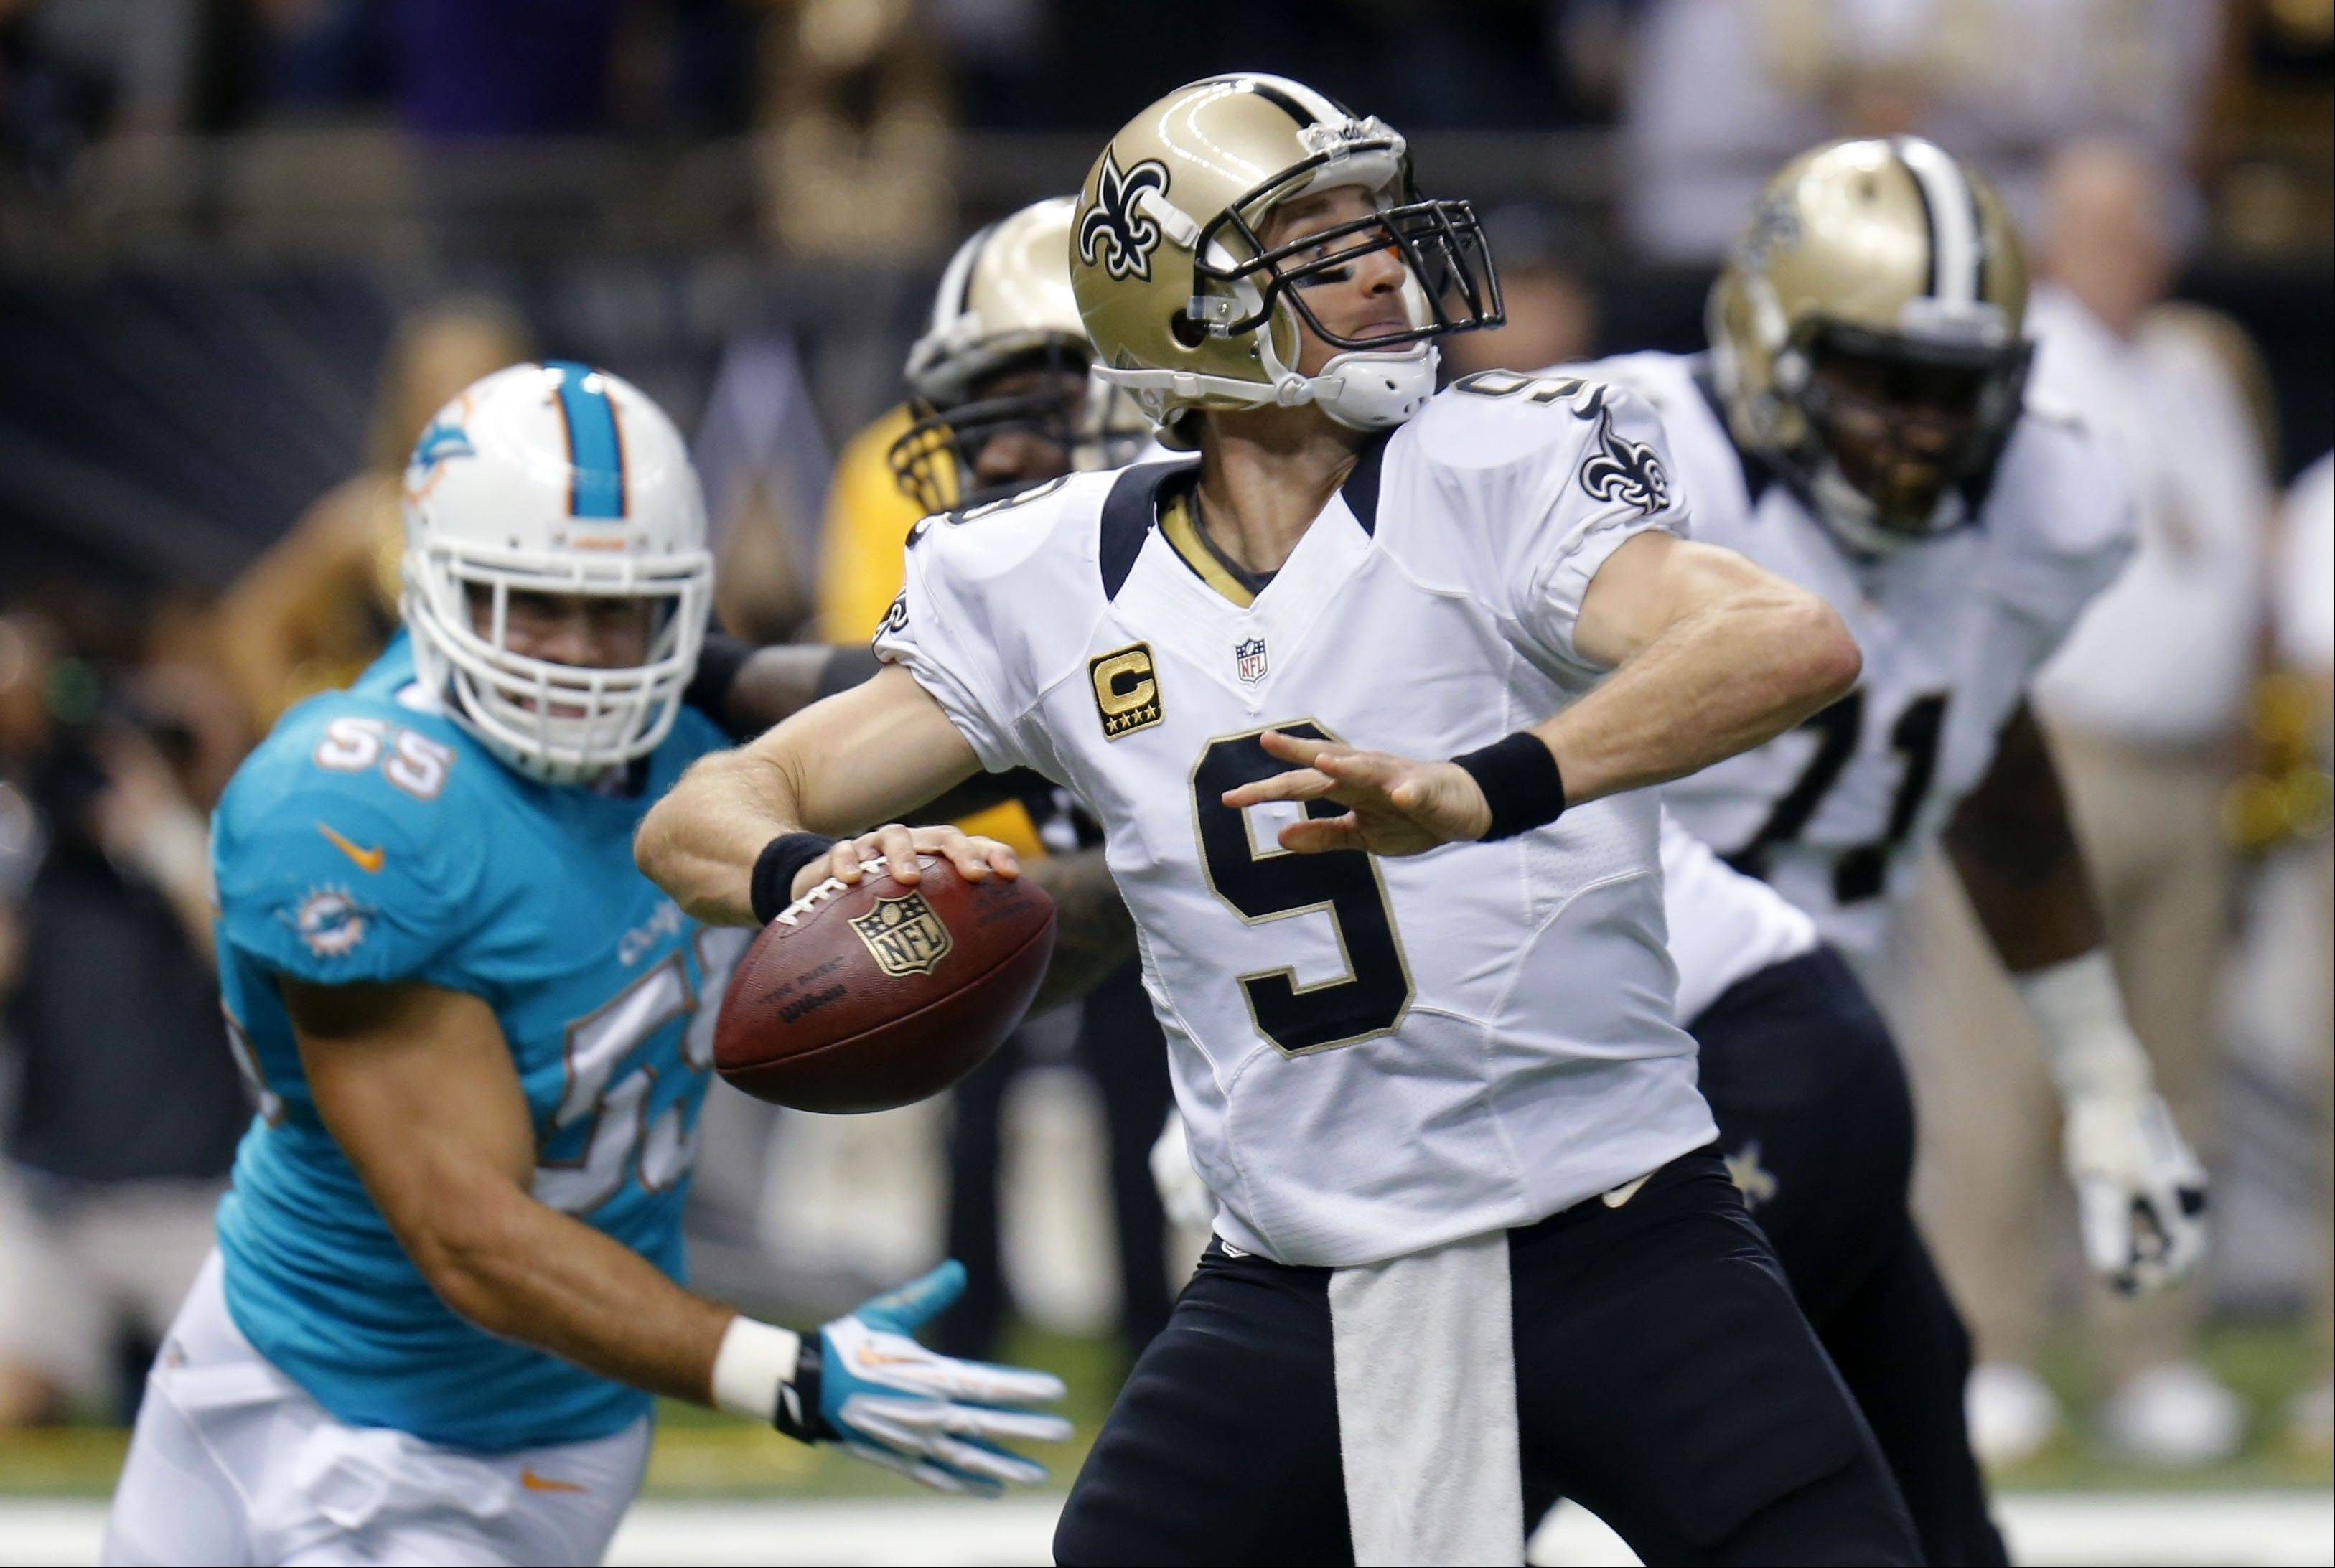 New Orleans Saints quarterback Drew Brees passes as Miami Dolphins outside linebacker Koa Misi rushes in the first half in New Orleans.